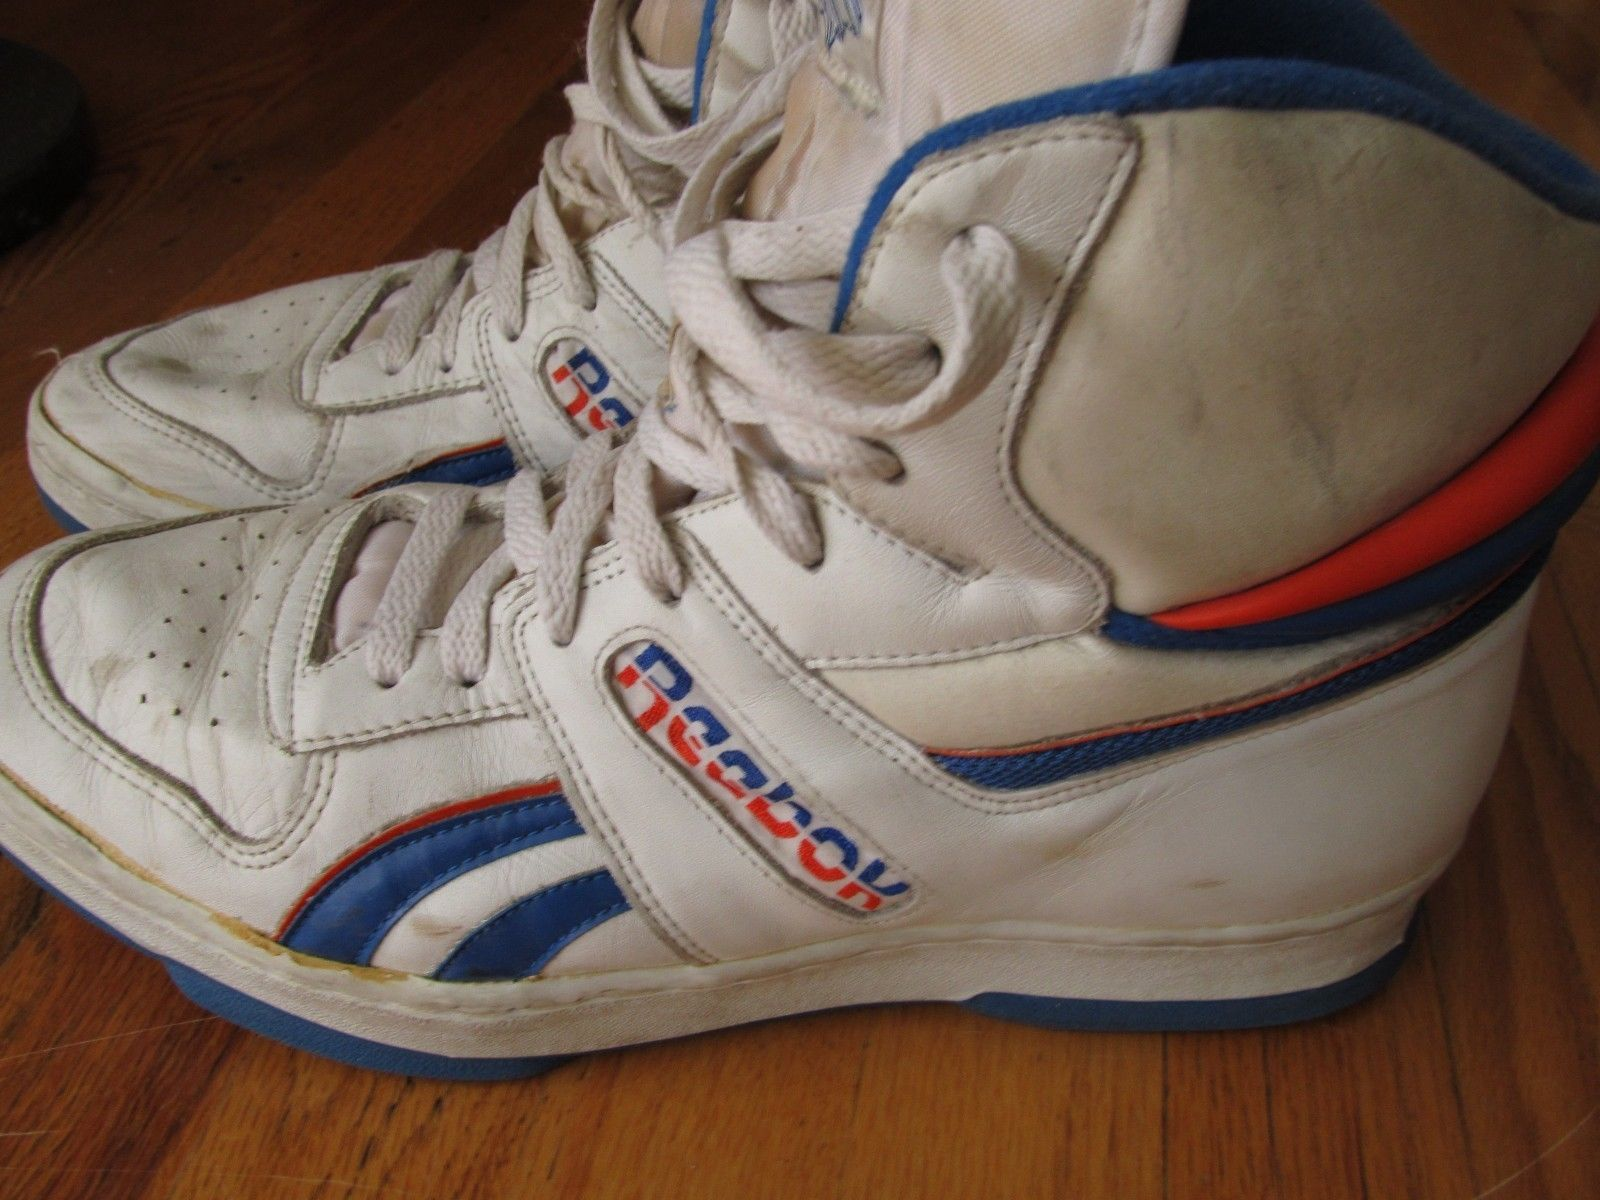 6fafd19833f Men s Vintage Reebok High Top Basketball Athletic Shoes Hand Made Size 12